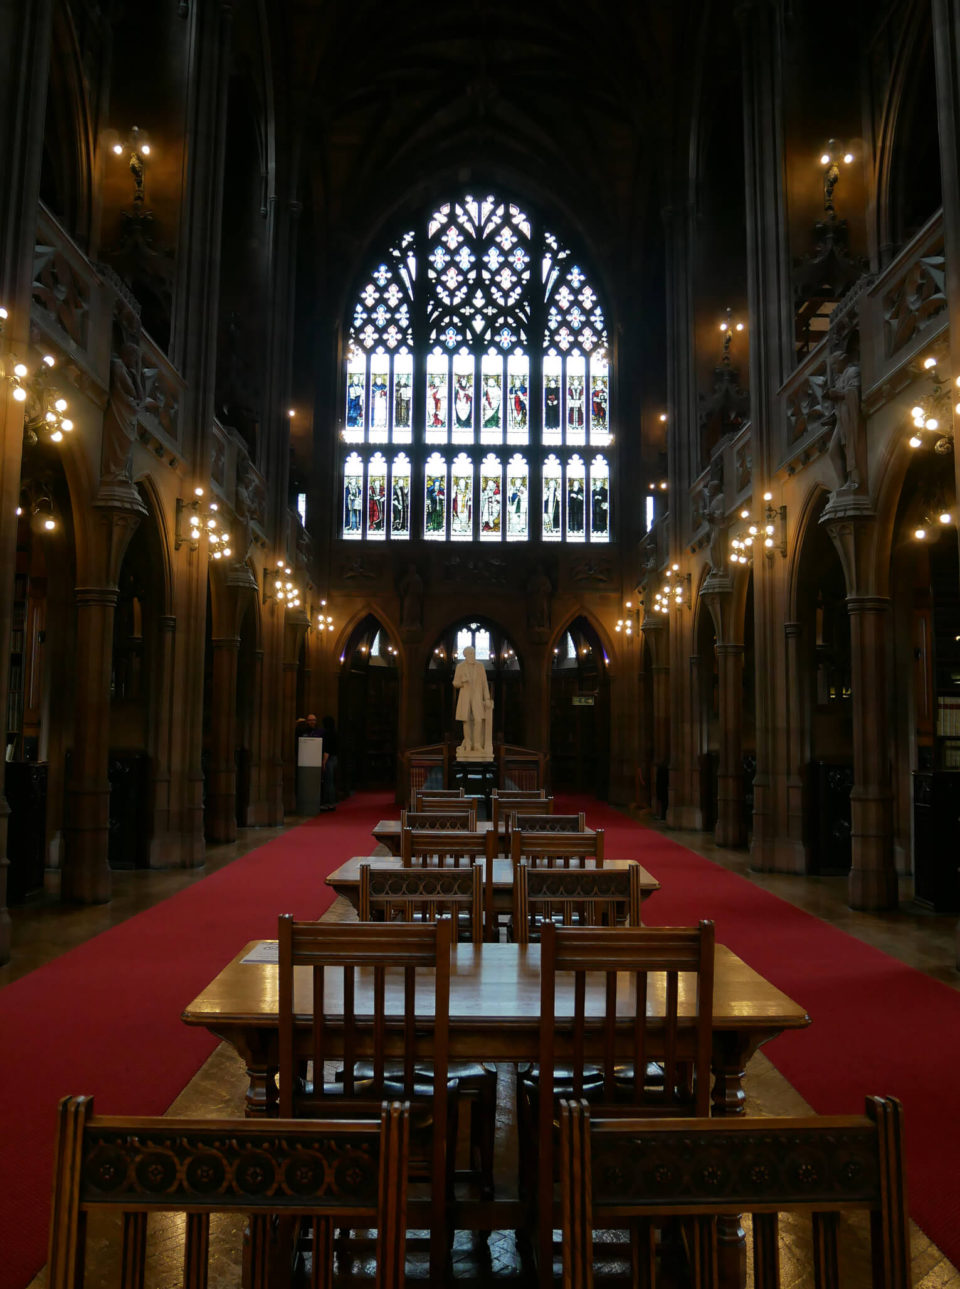 John Rylands Library Manchester